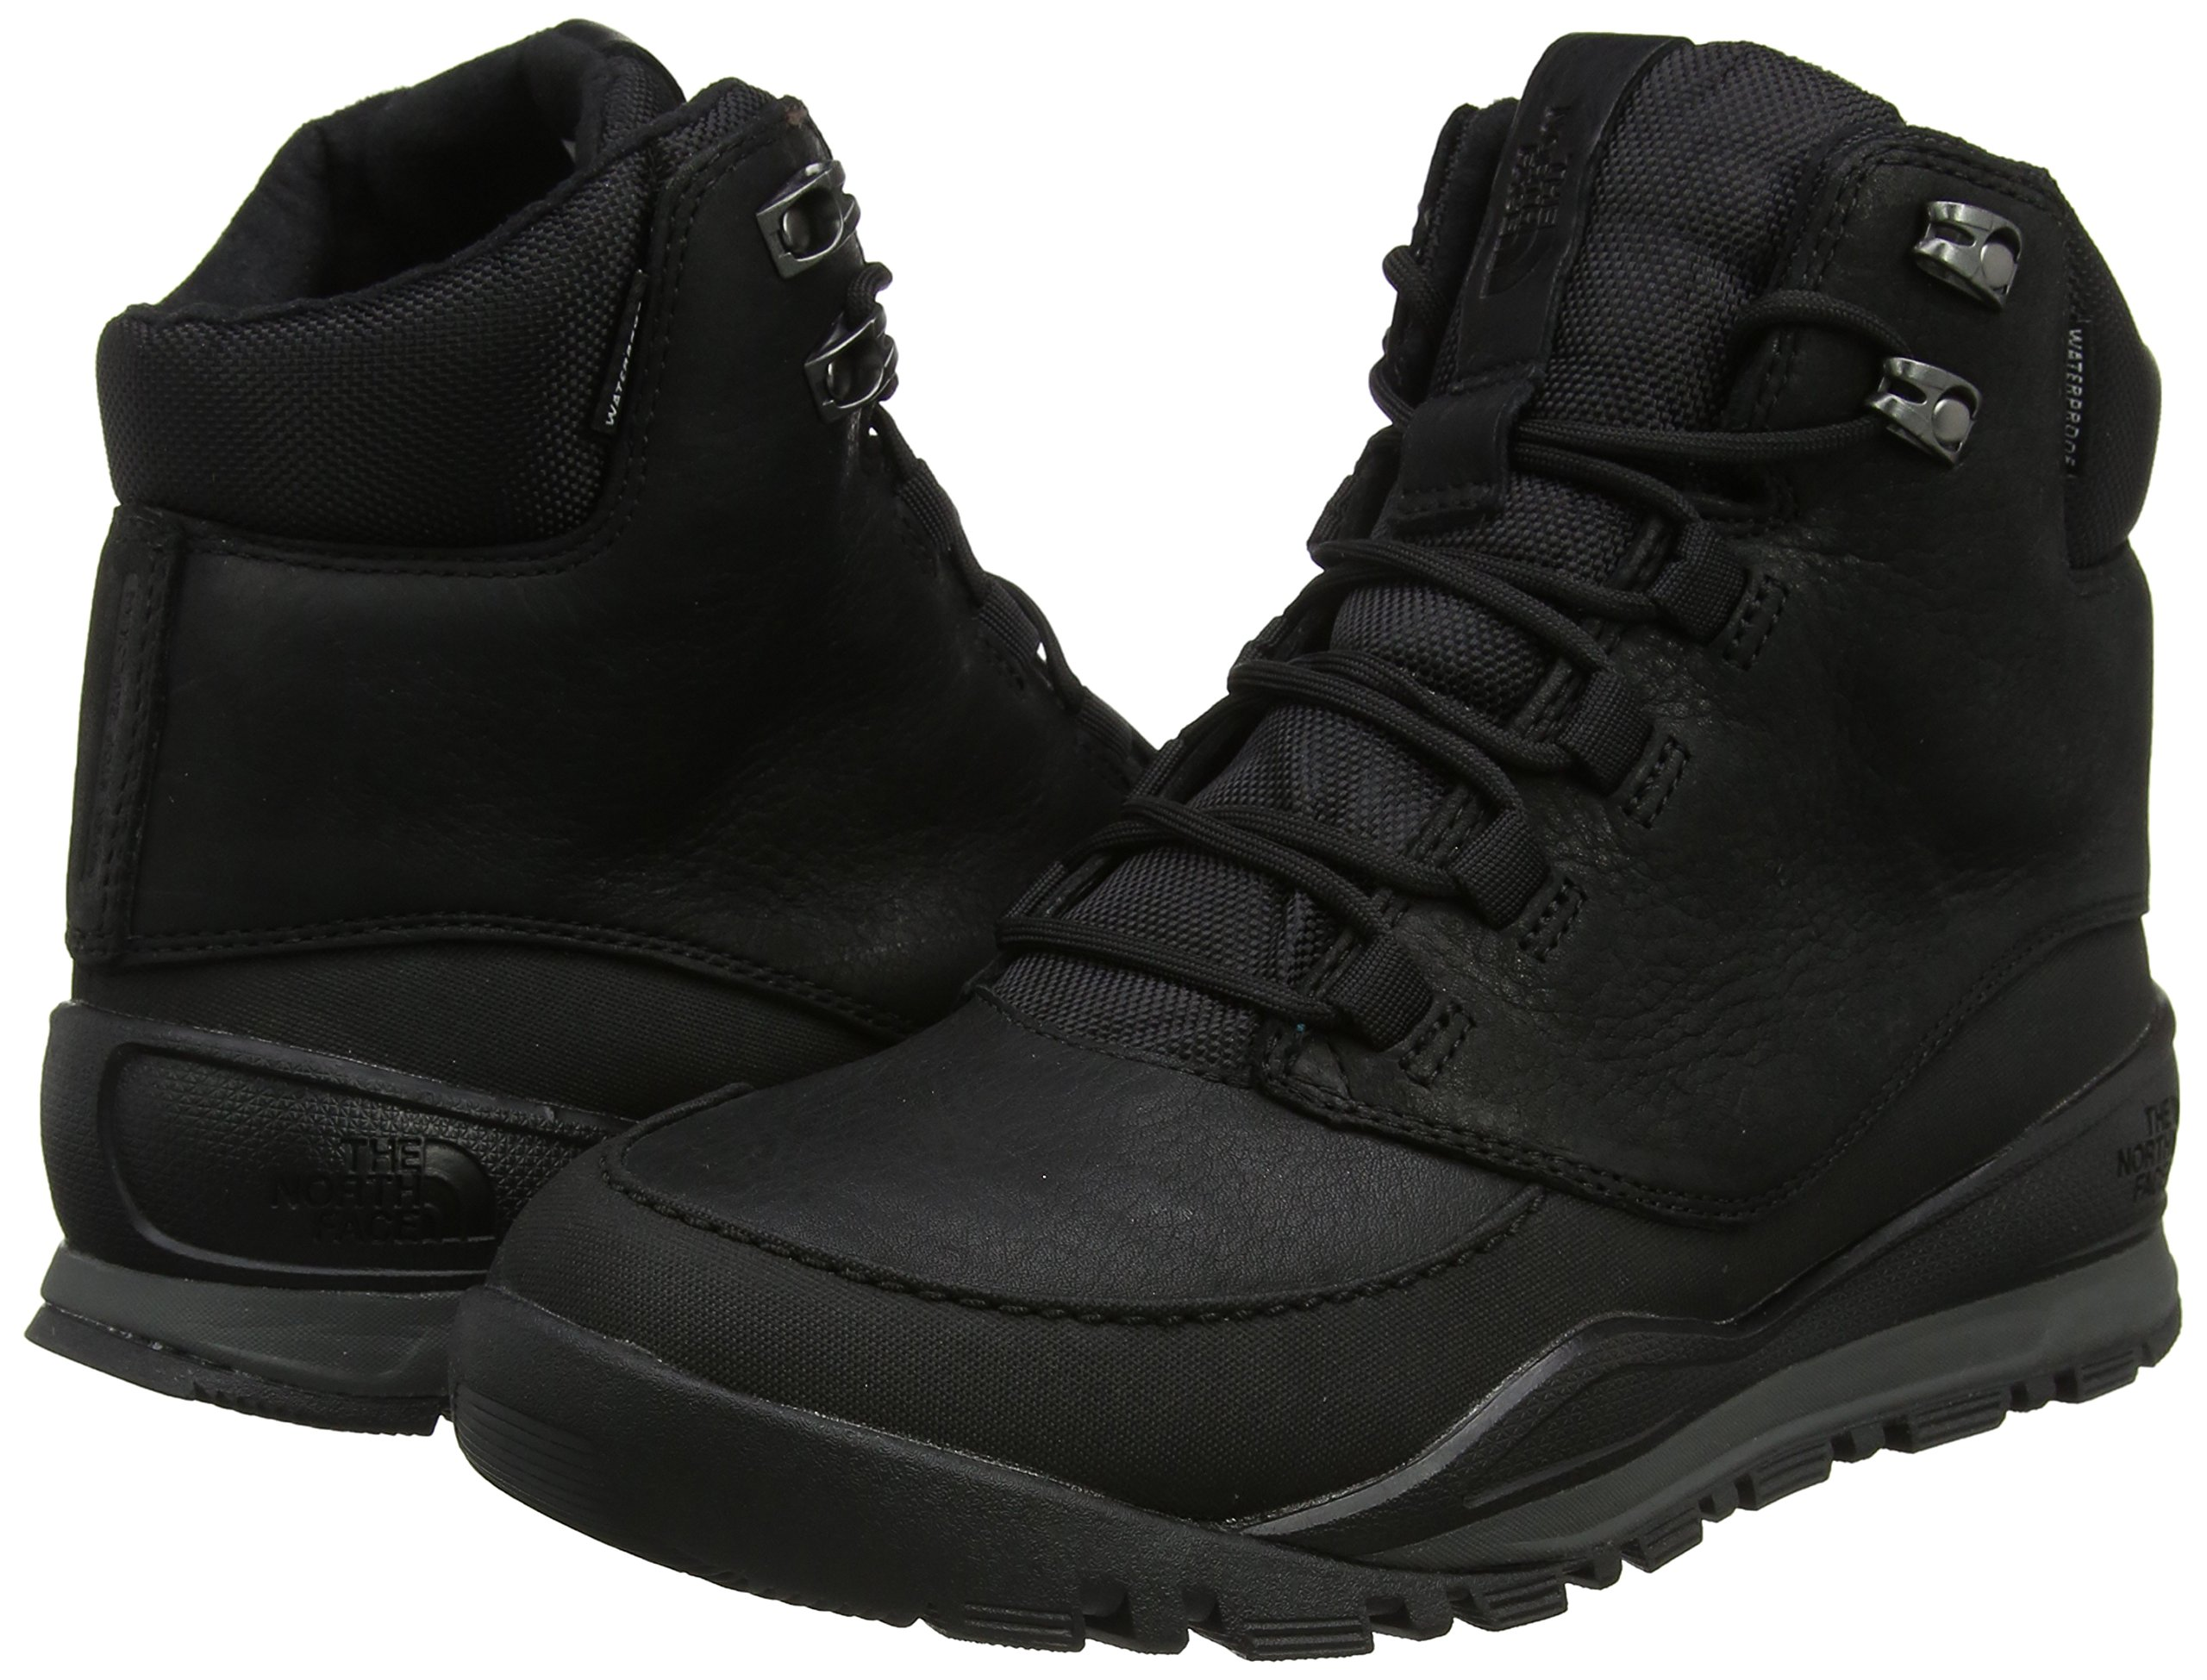 05496f919 THE NORTH FACE Men's Edgewood 7-inch Low Rise Hiking Boots ...